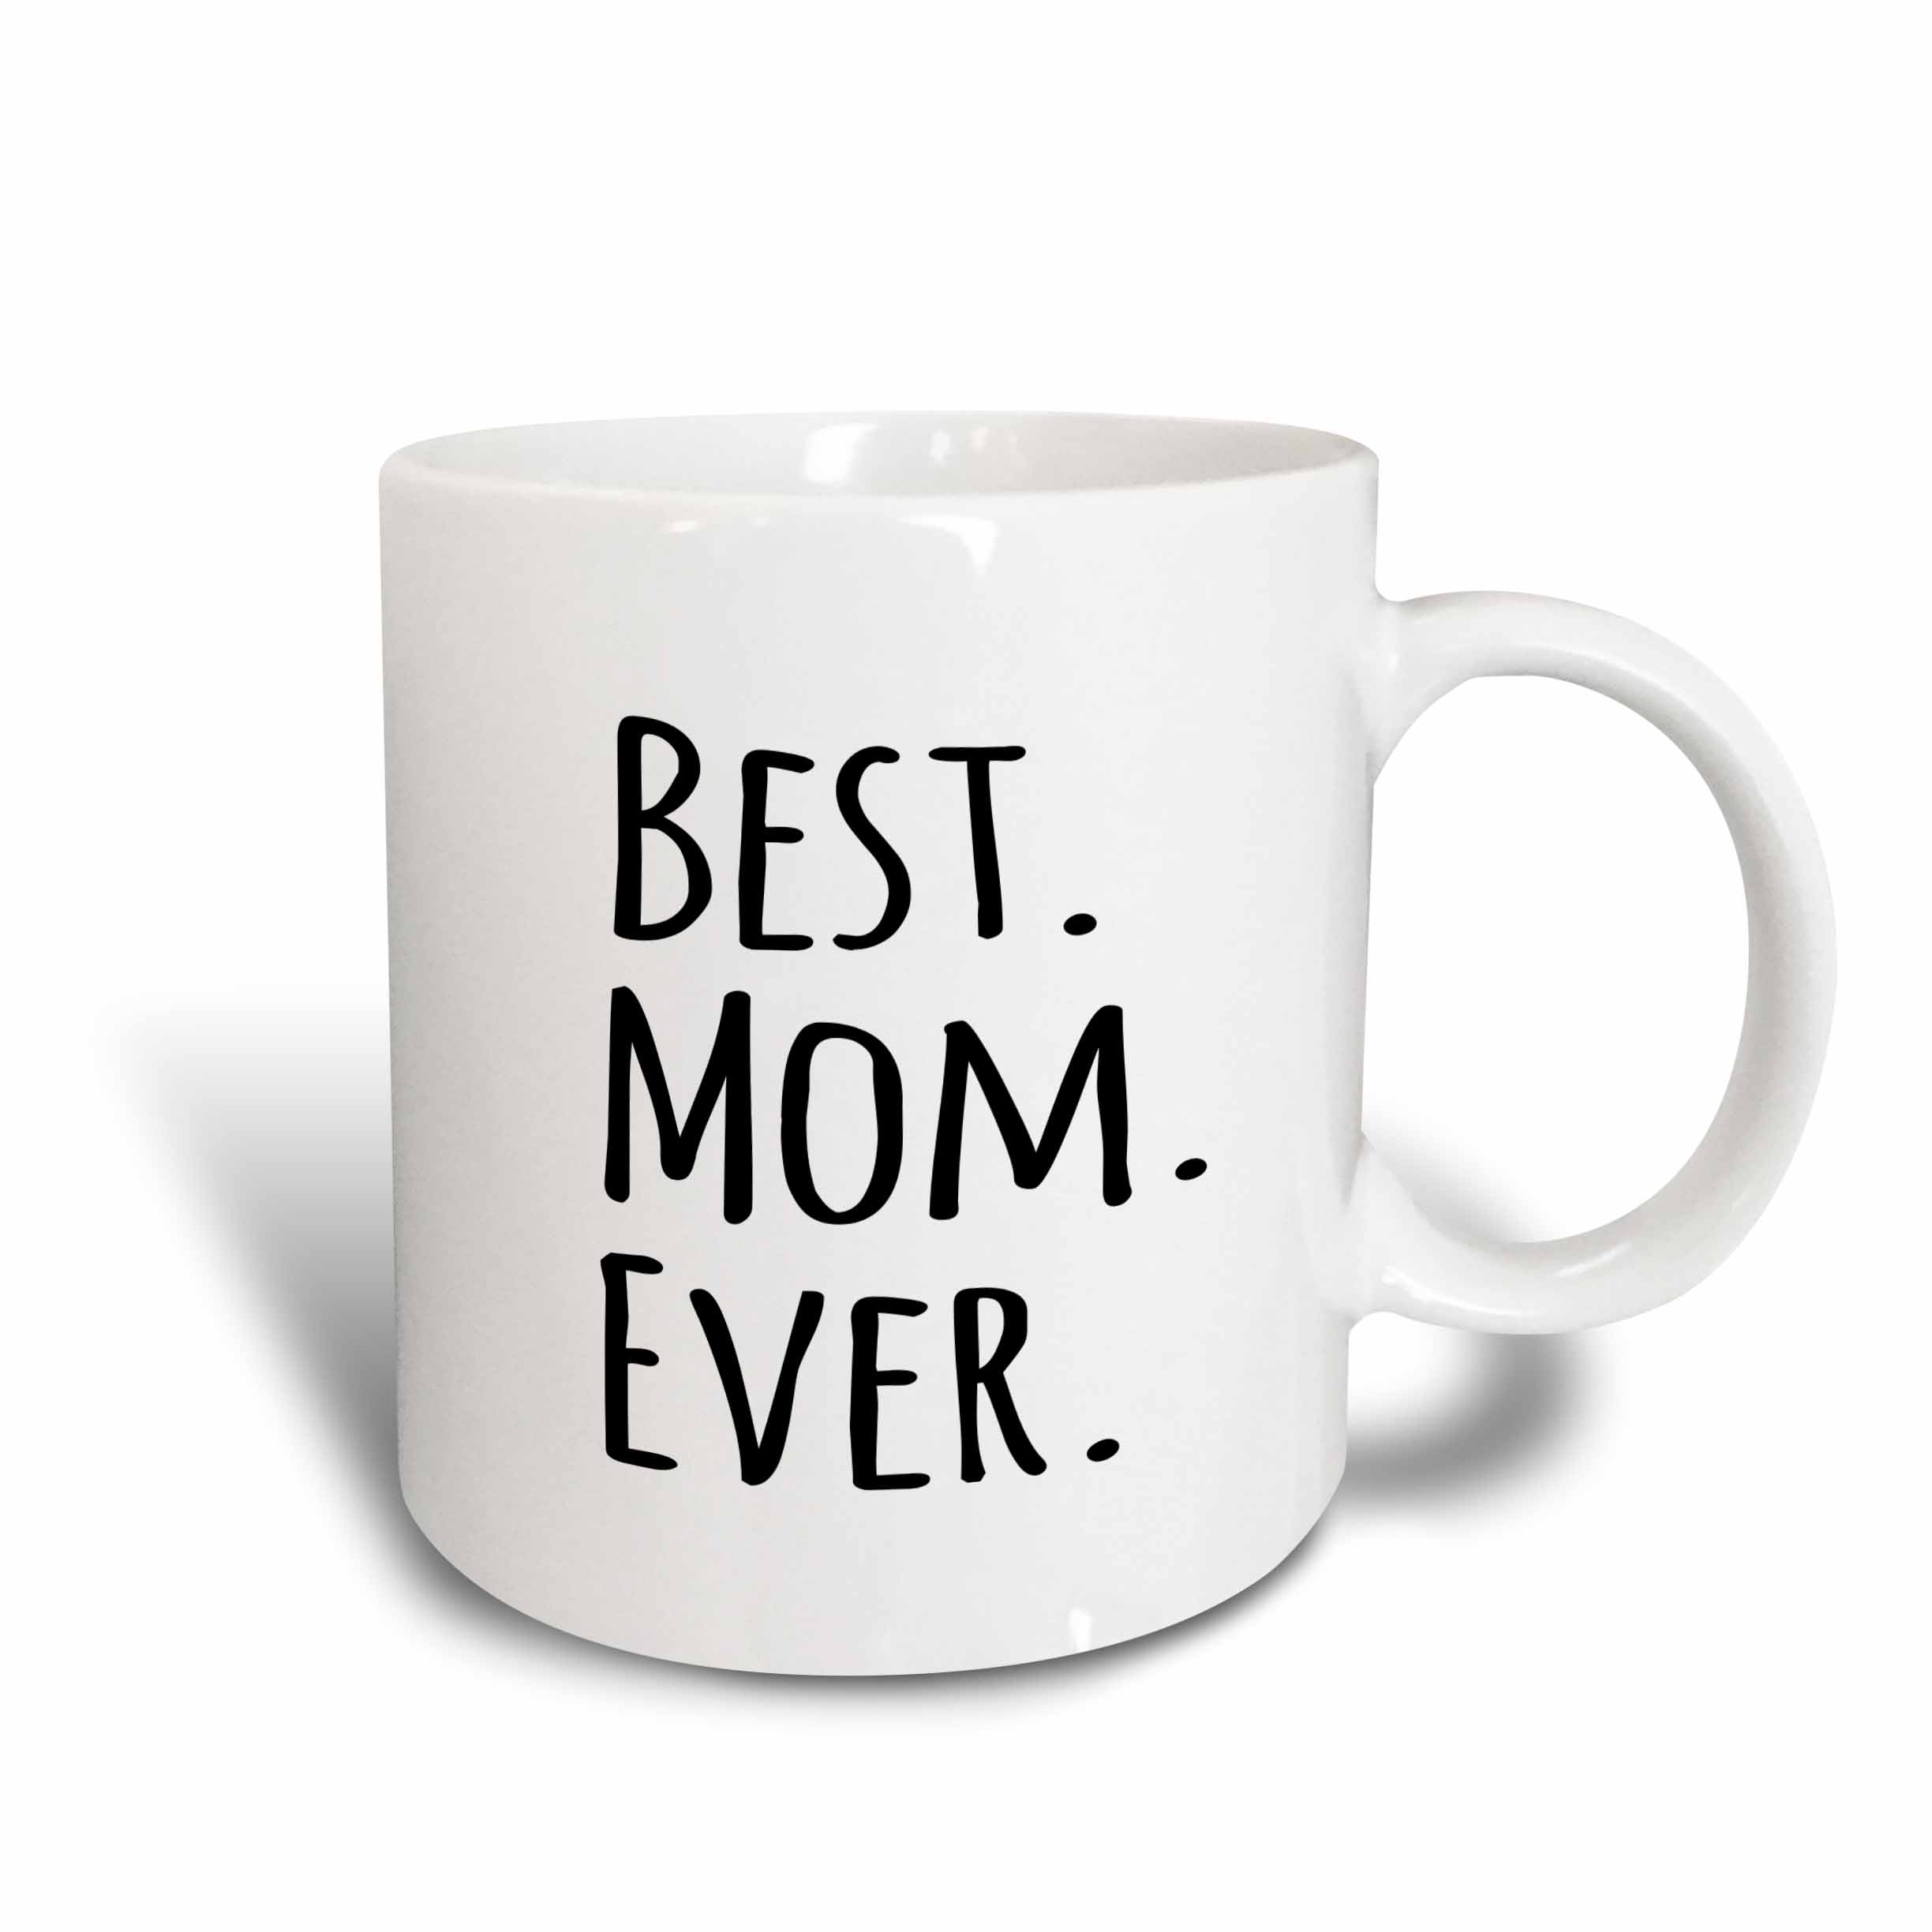 3dRose Best Mom Ever Gifts for parents Good for Mothers day black text, Ceramic Mug, 11-ounce by 3dRose